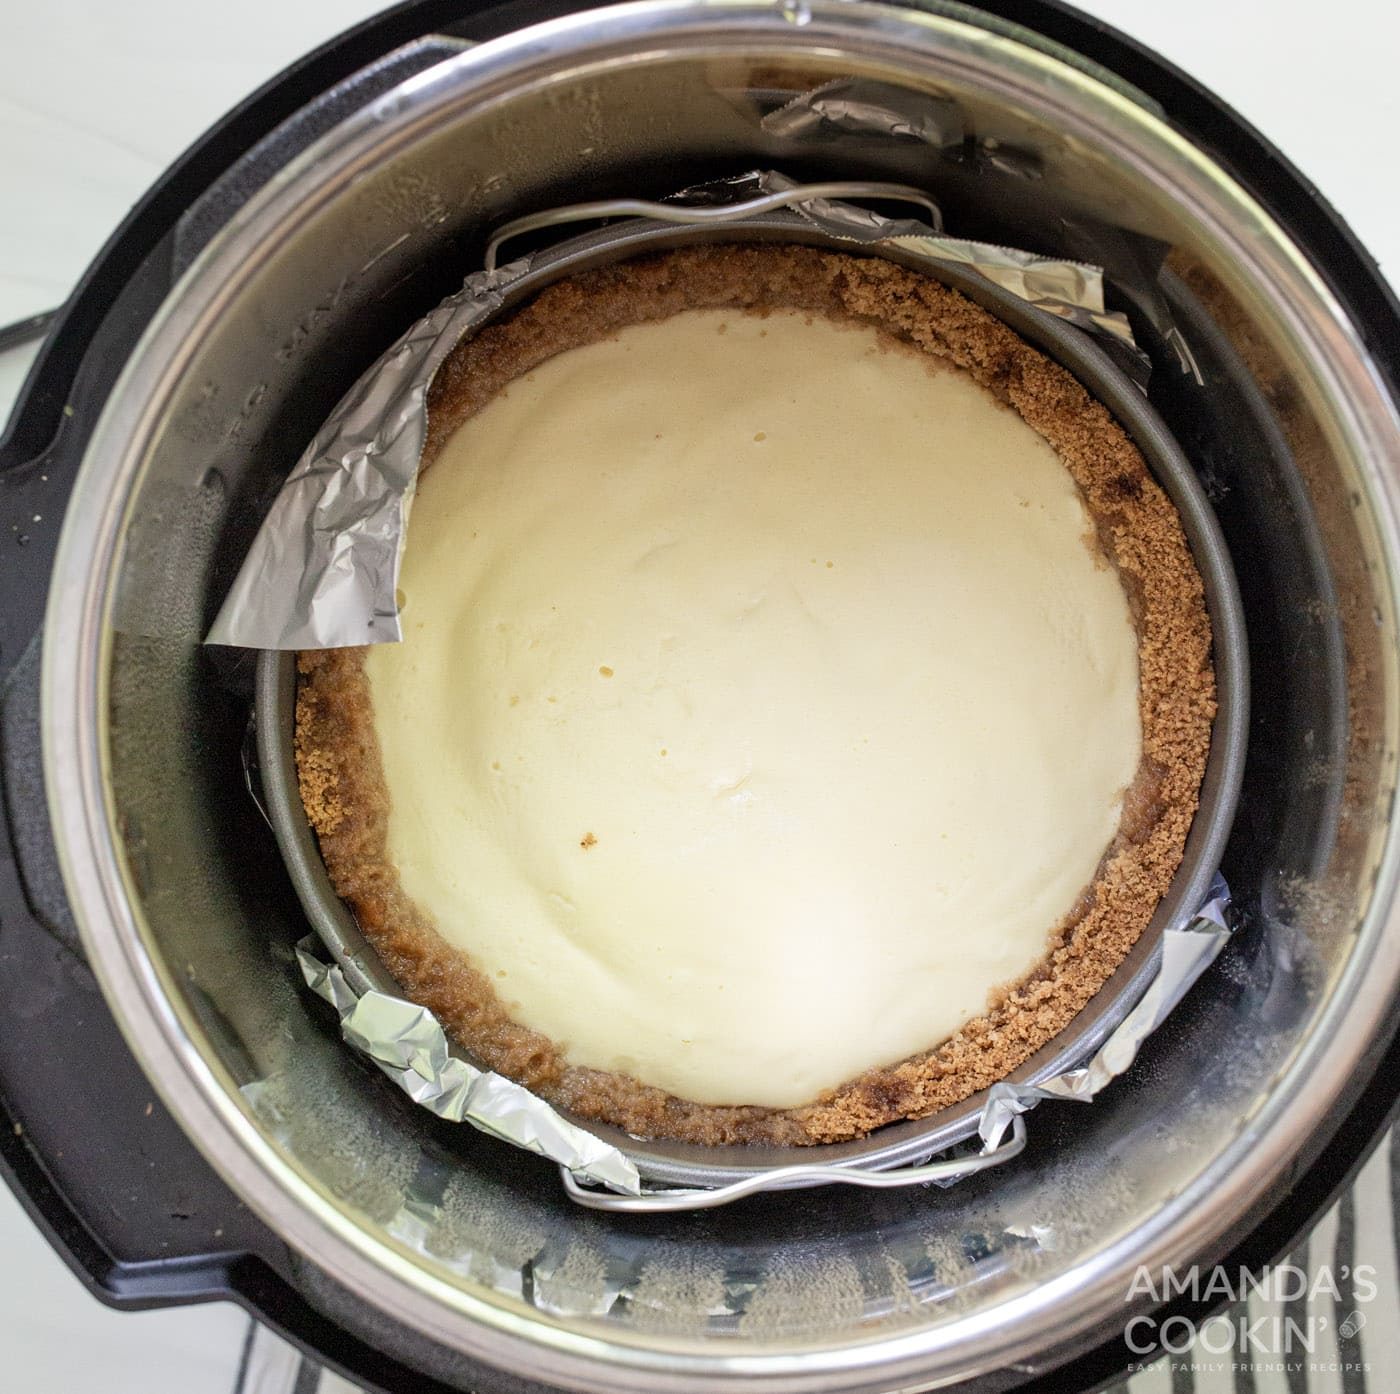 baked cheesecake inside an instant pot